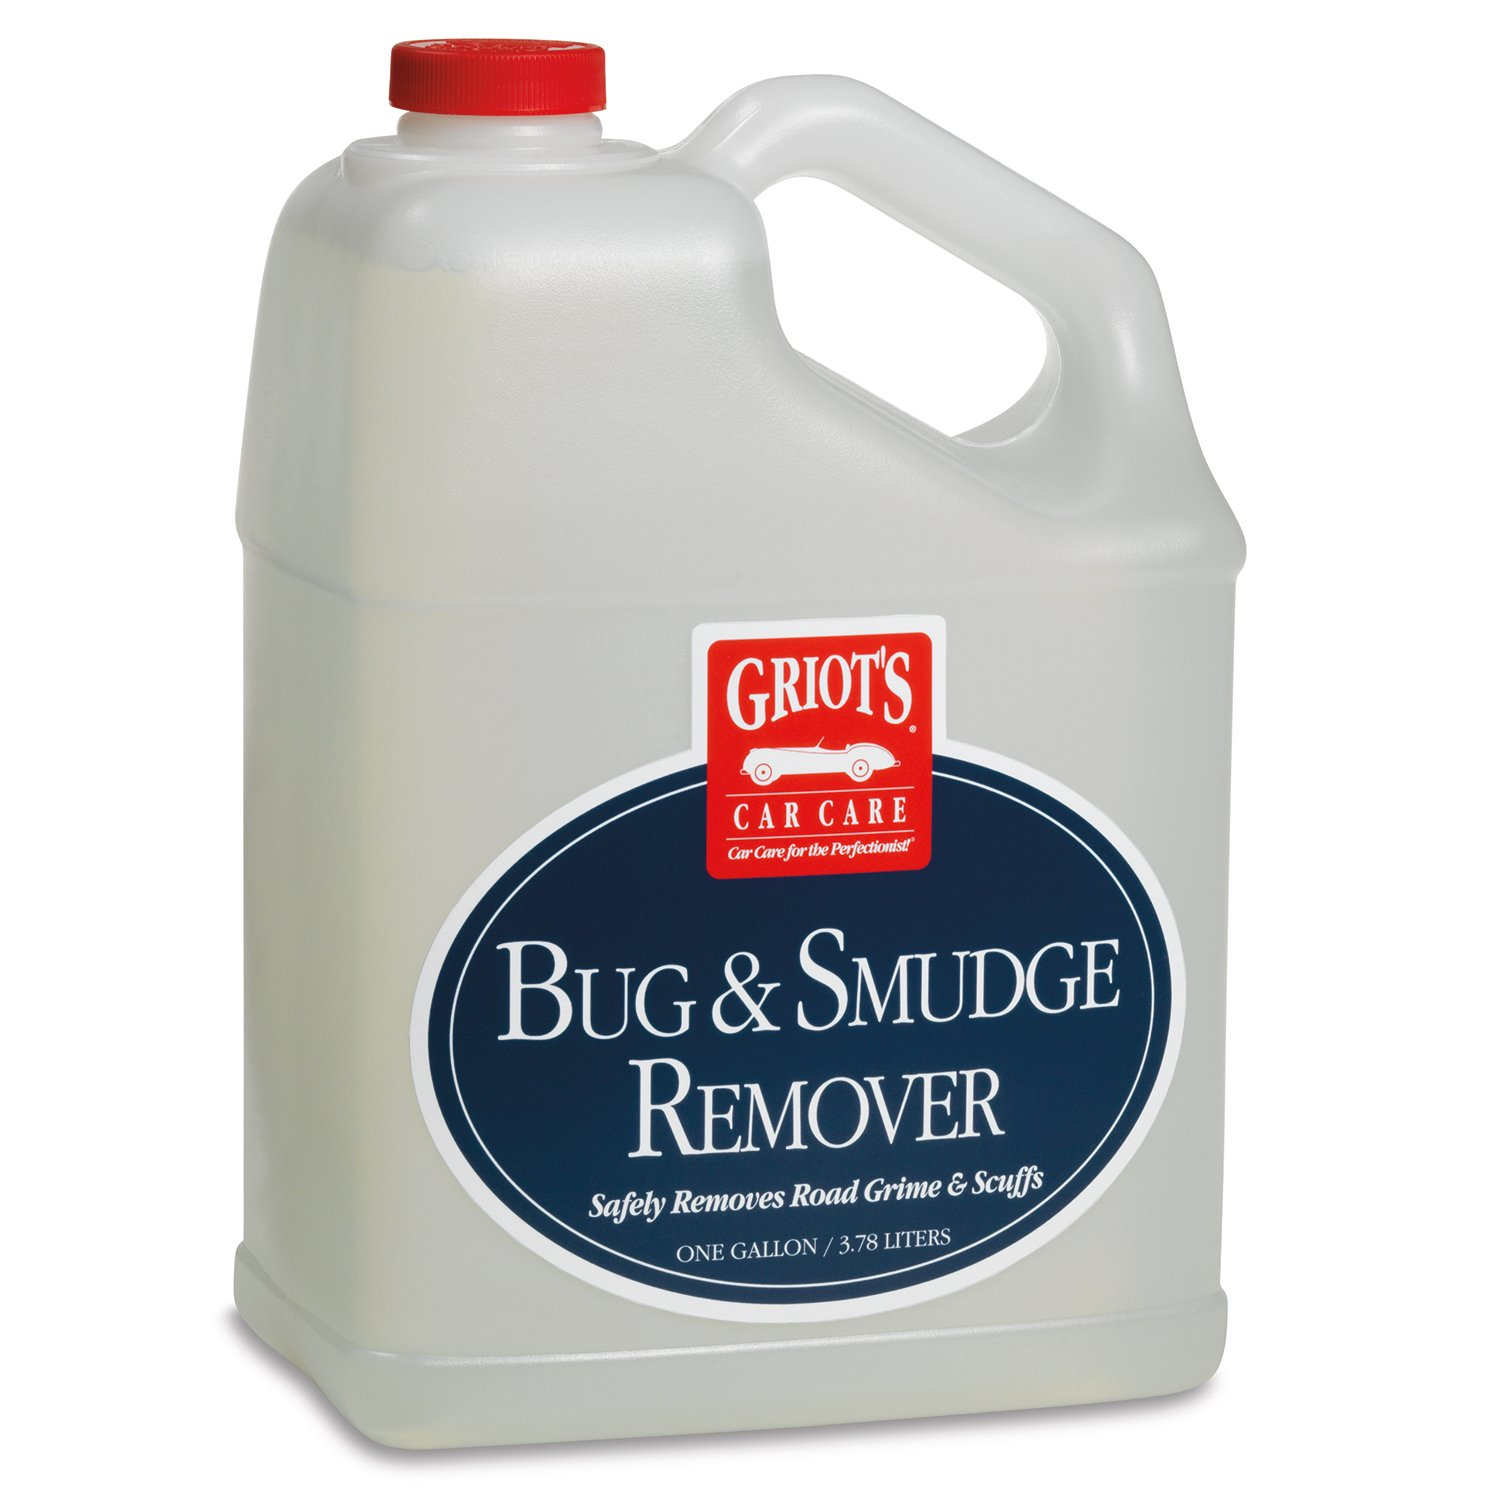 Griot's Garage 11015 Bug and Smudge Remover Gallon, 128. Fluid_Ounces